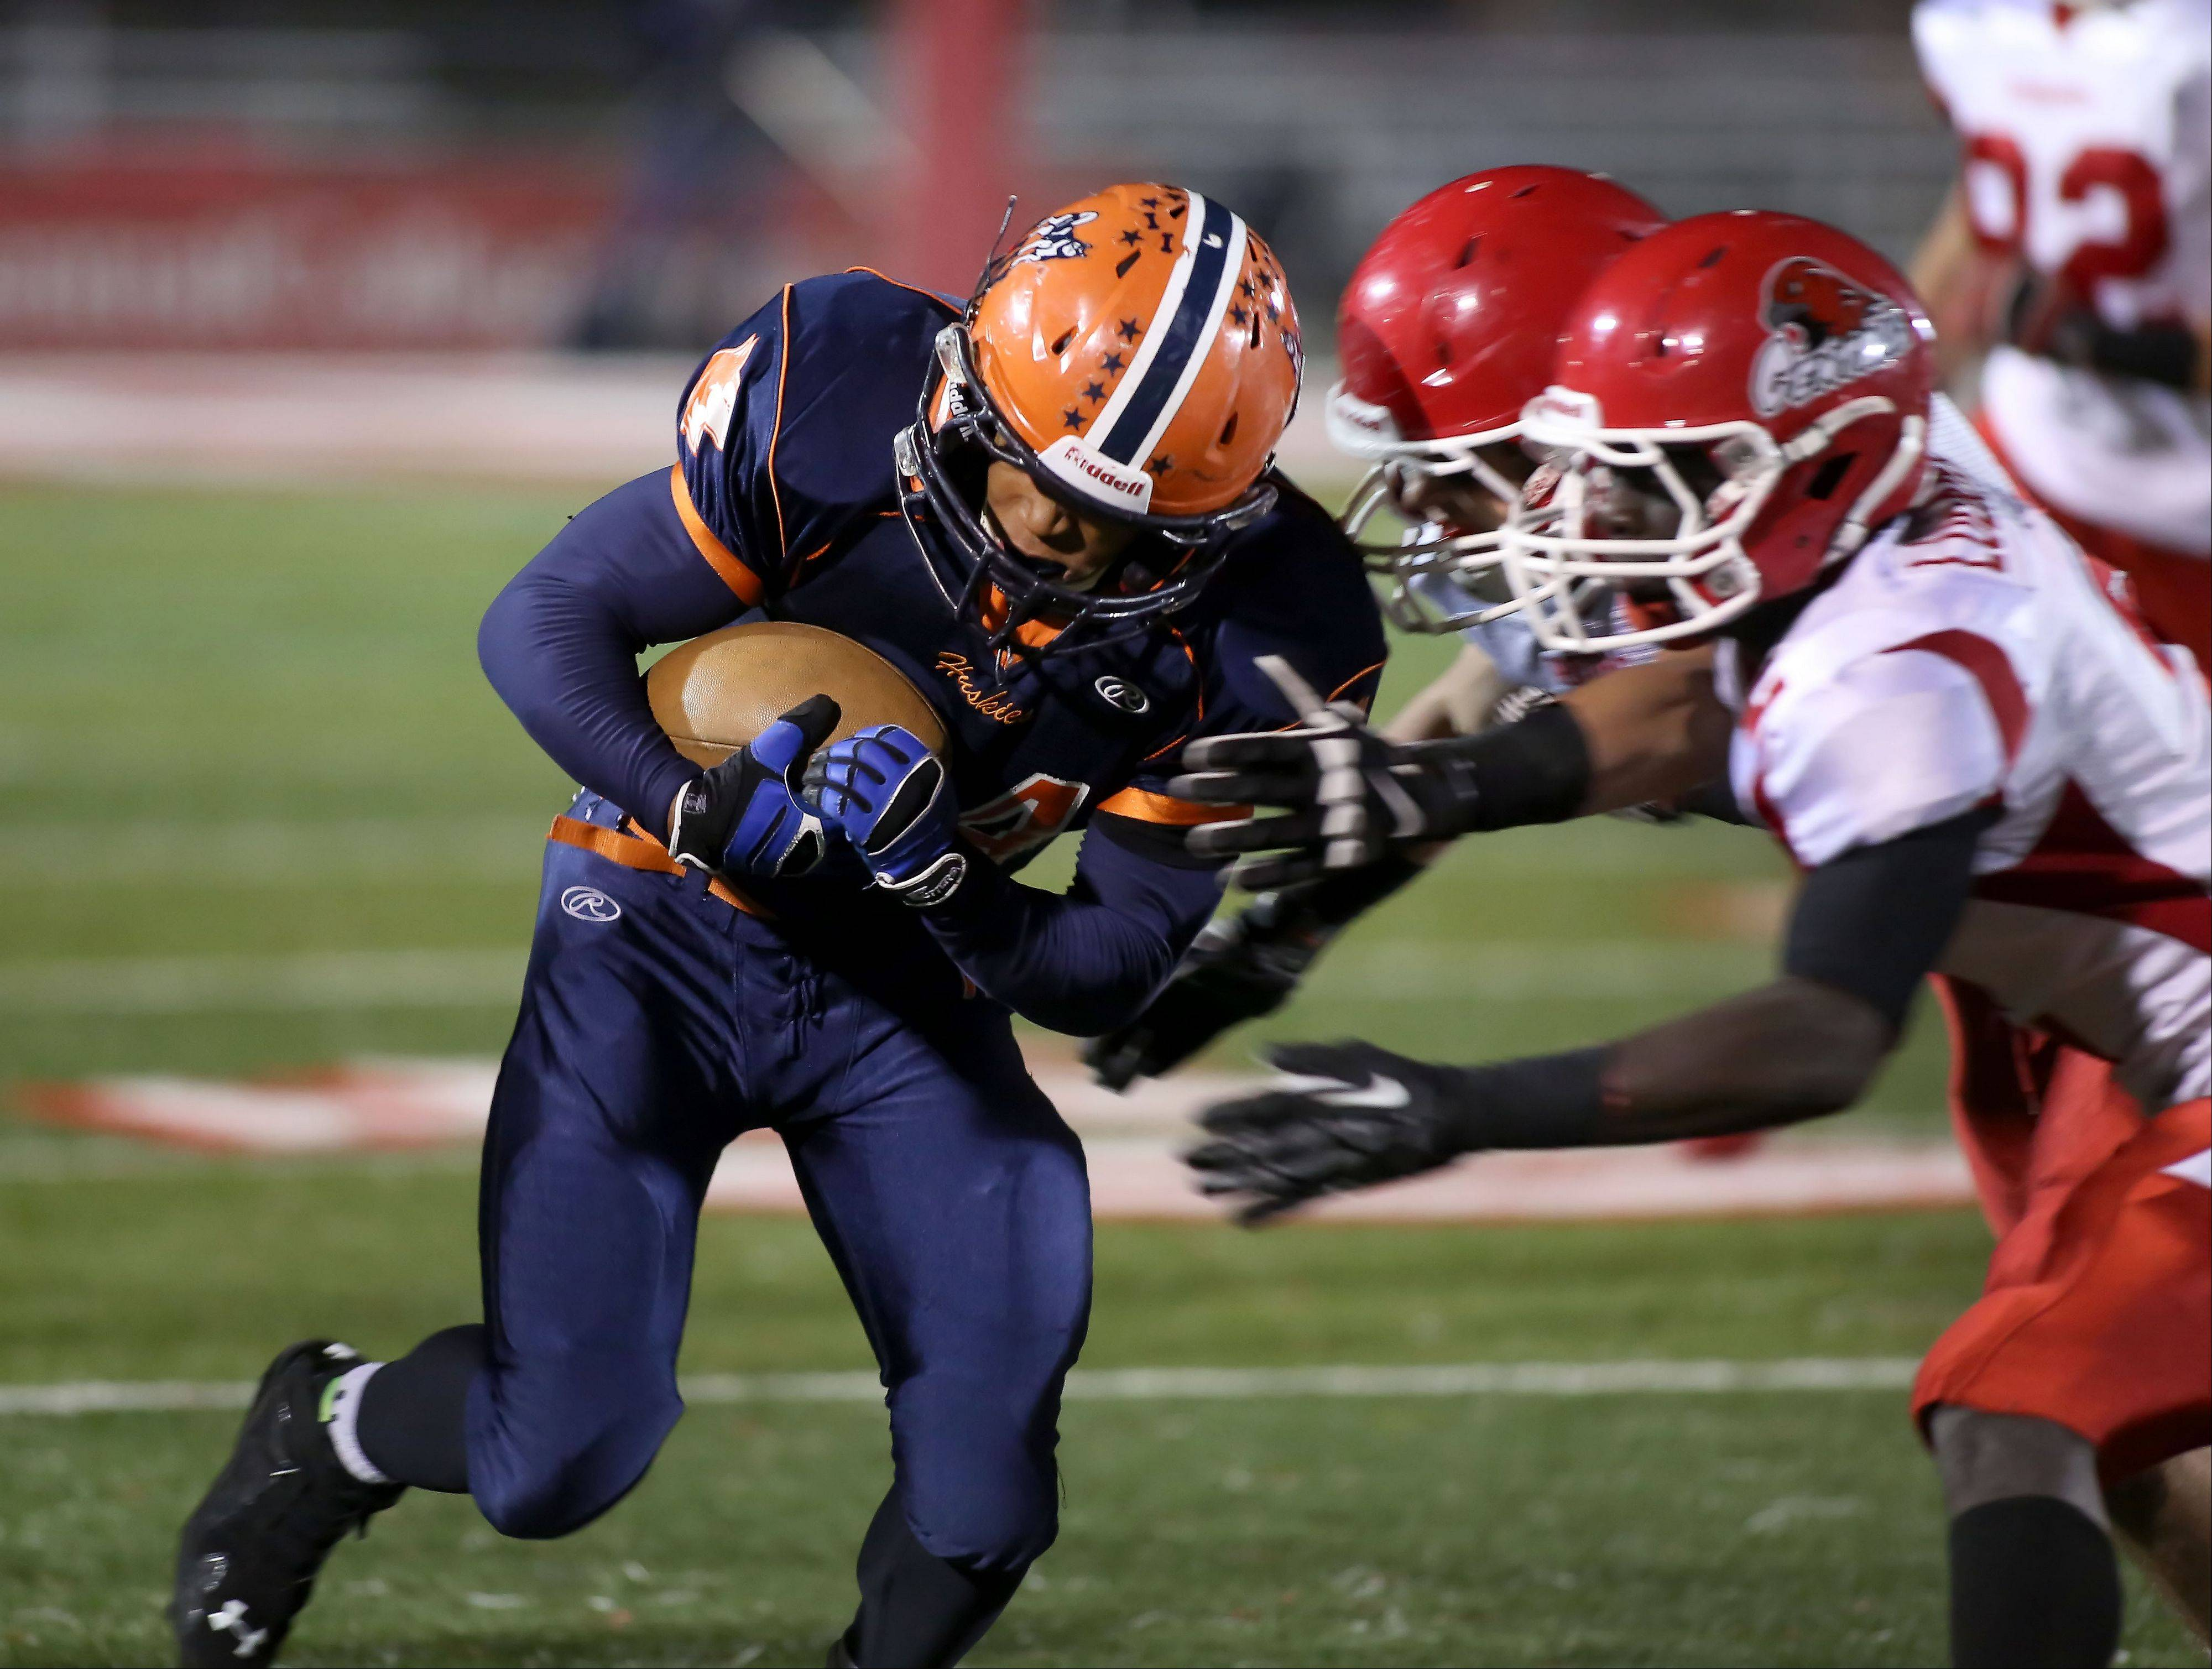 Sharad Crosby of Naperville North, left, tries to evade Naperville Central defense in football action on Friday at North Central College.